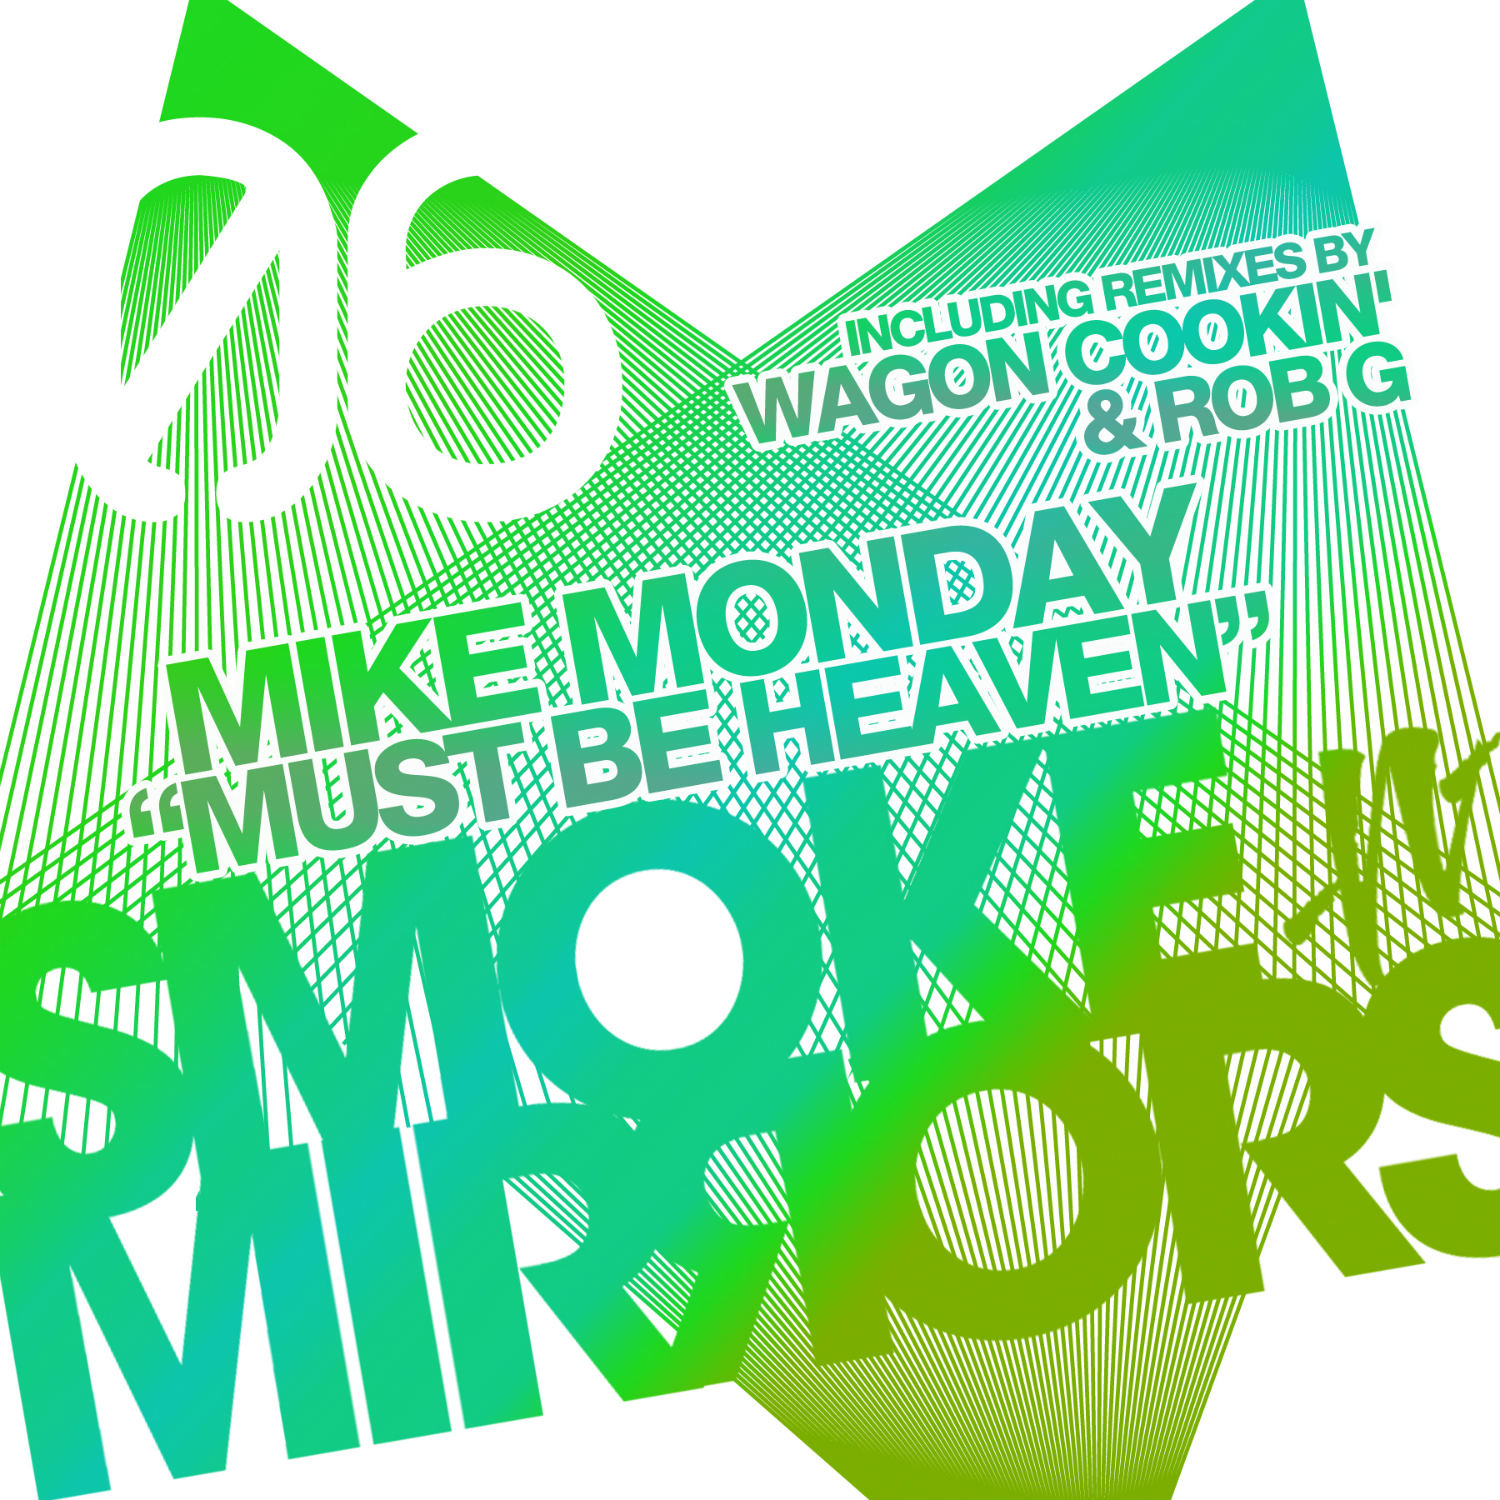 Mike Monday - Must Be Heaven